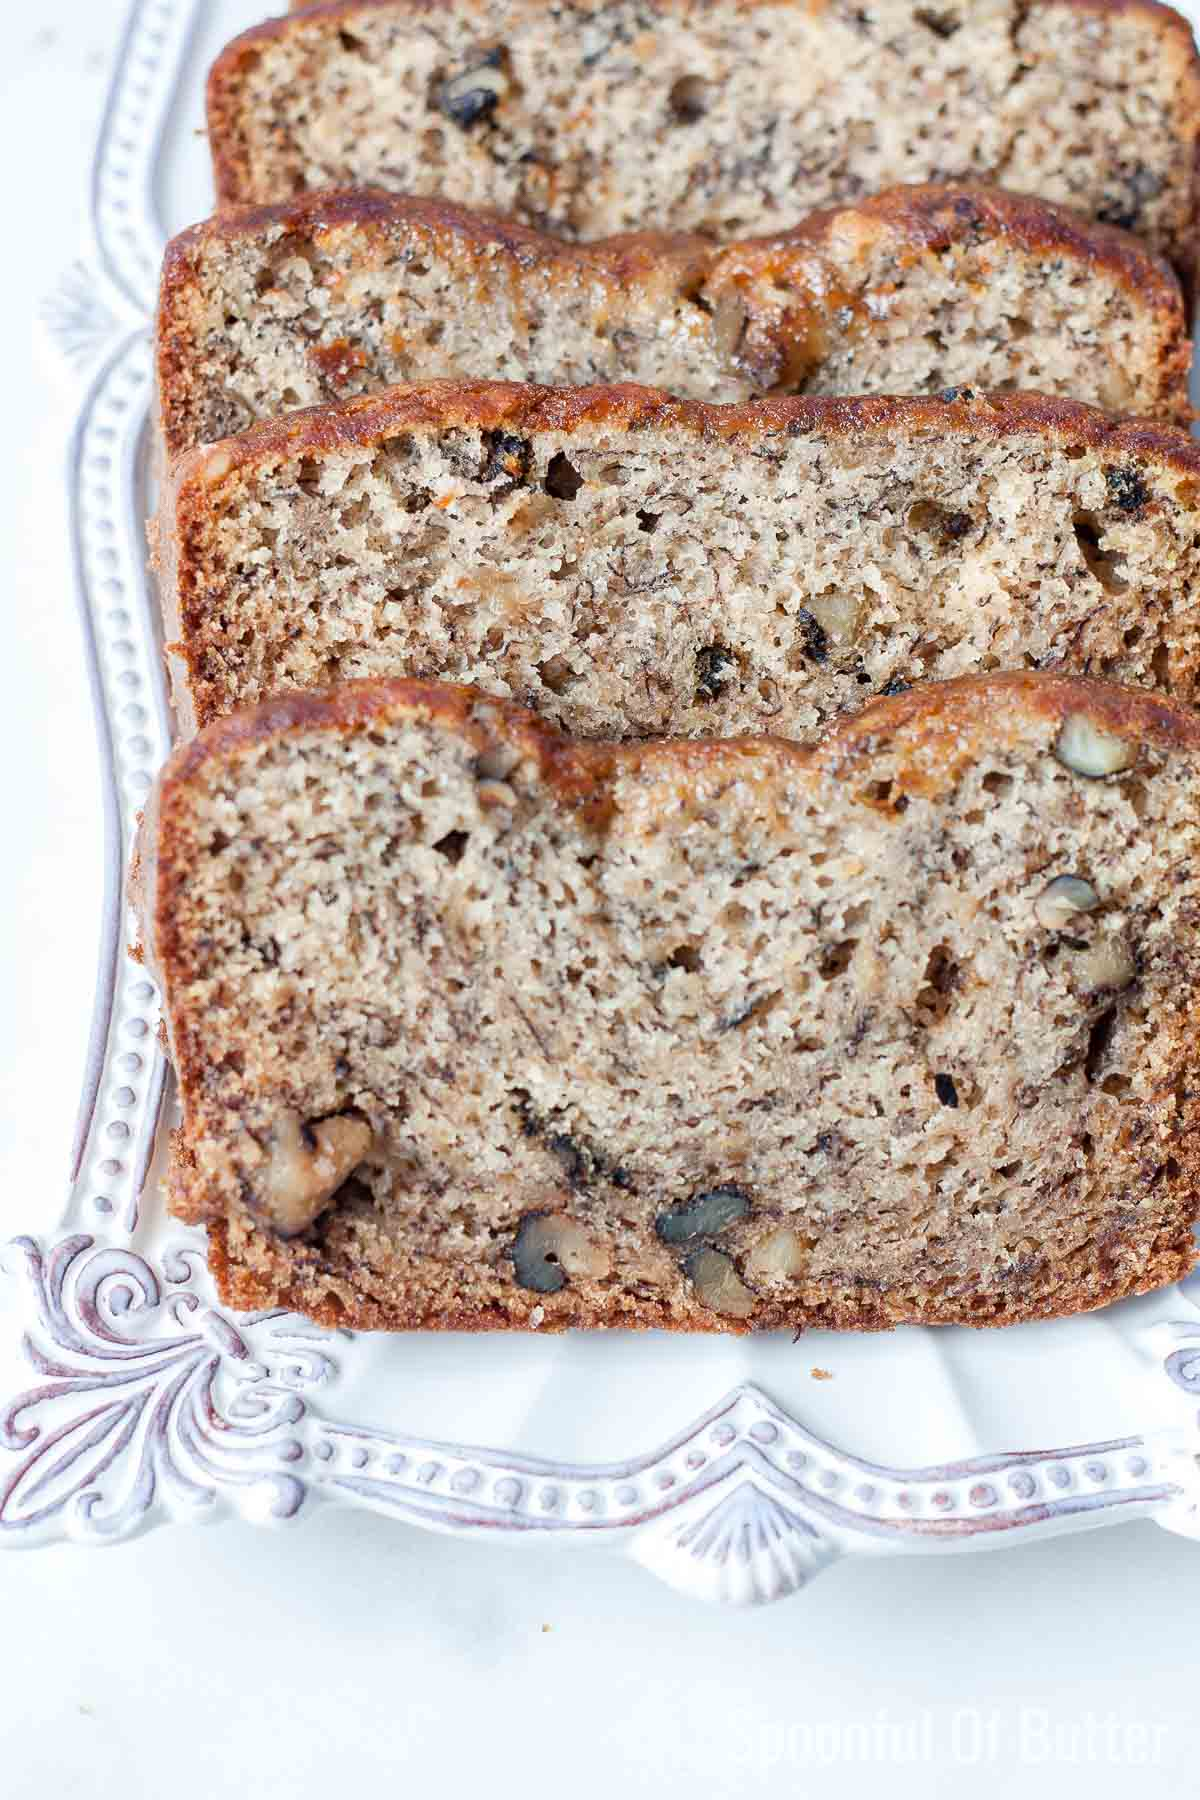 slices of best ever banana bread on a plate